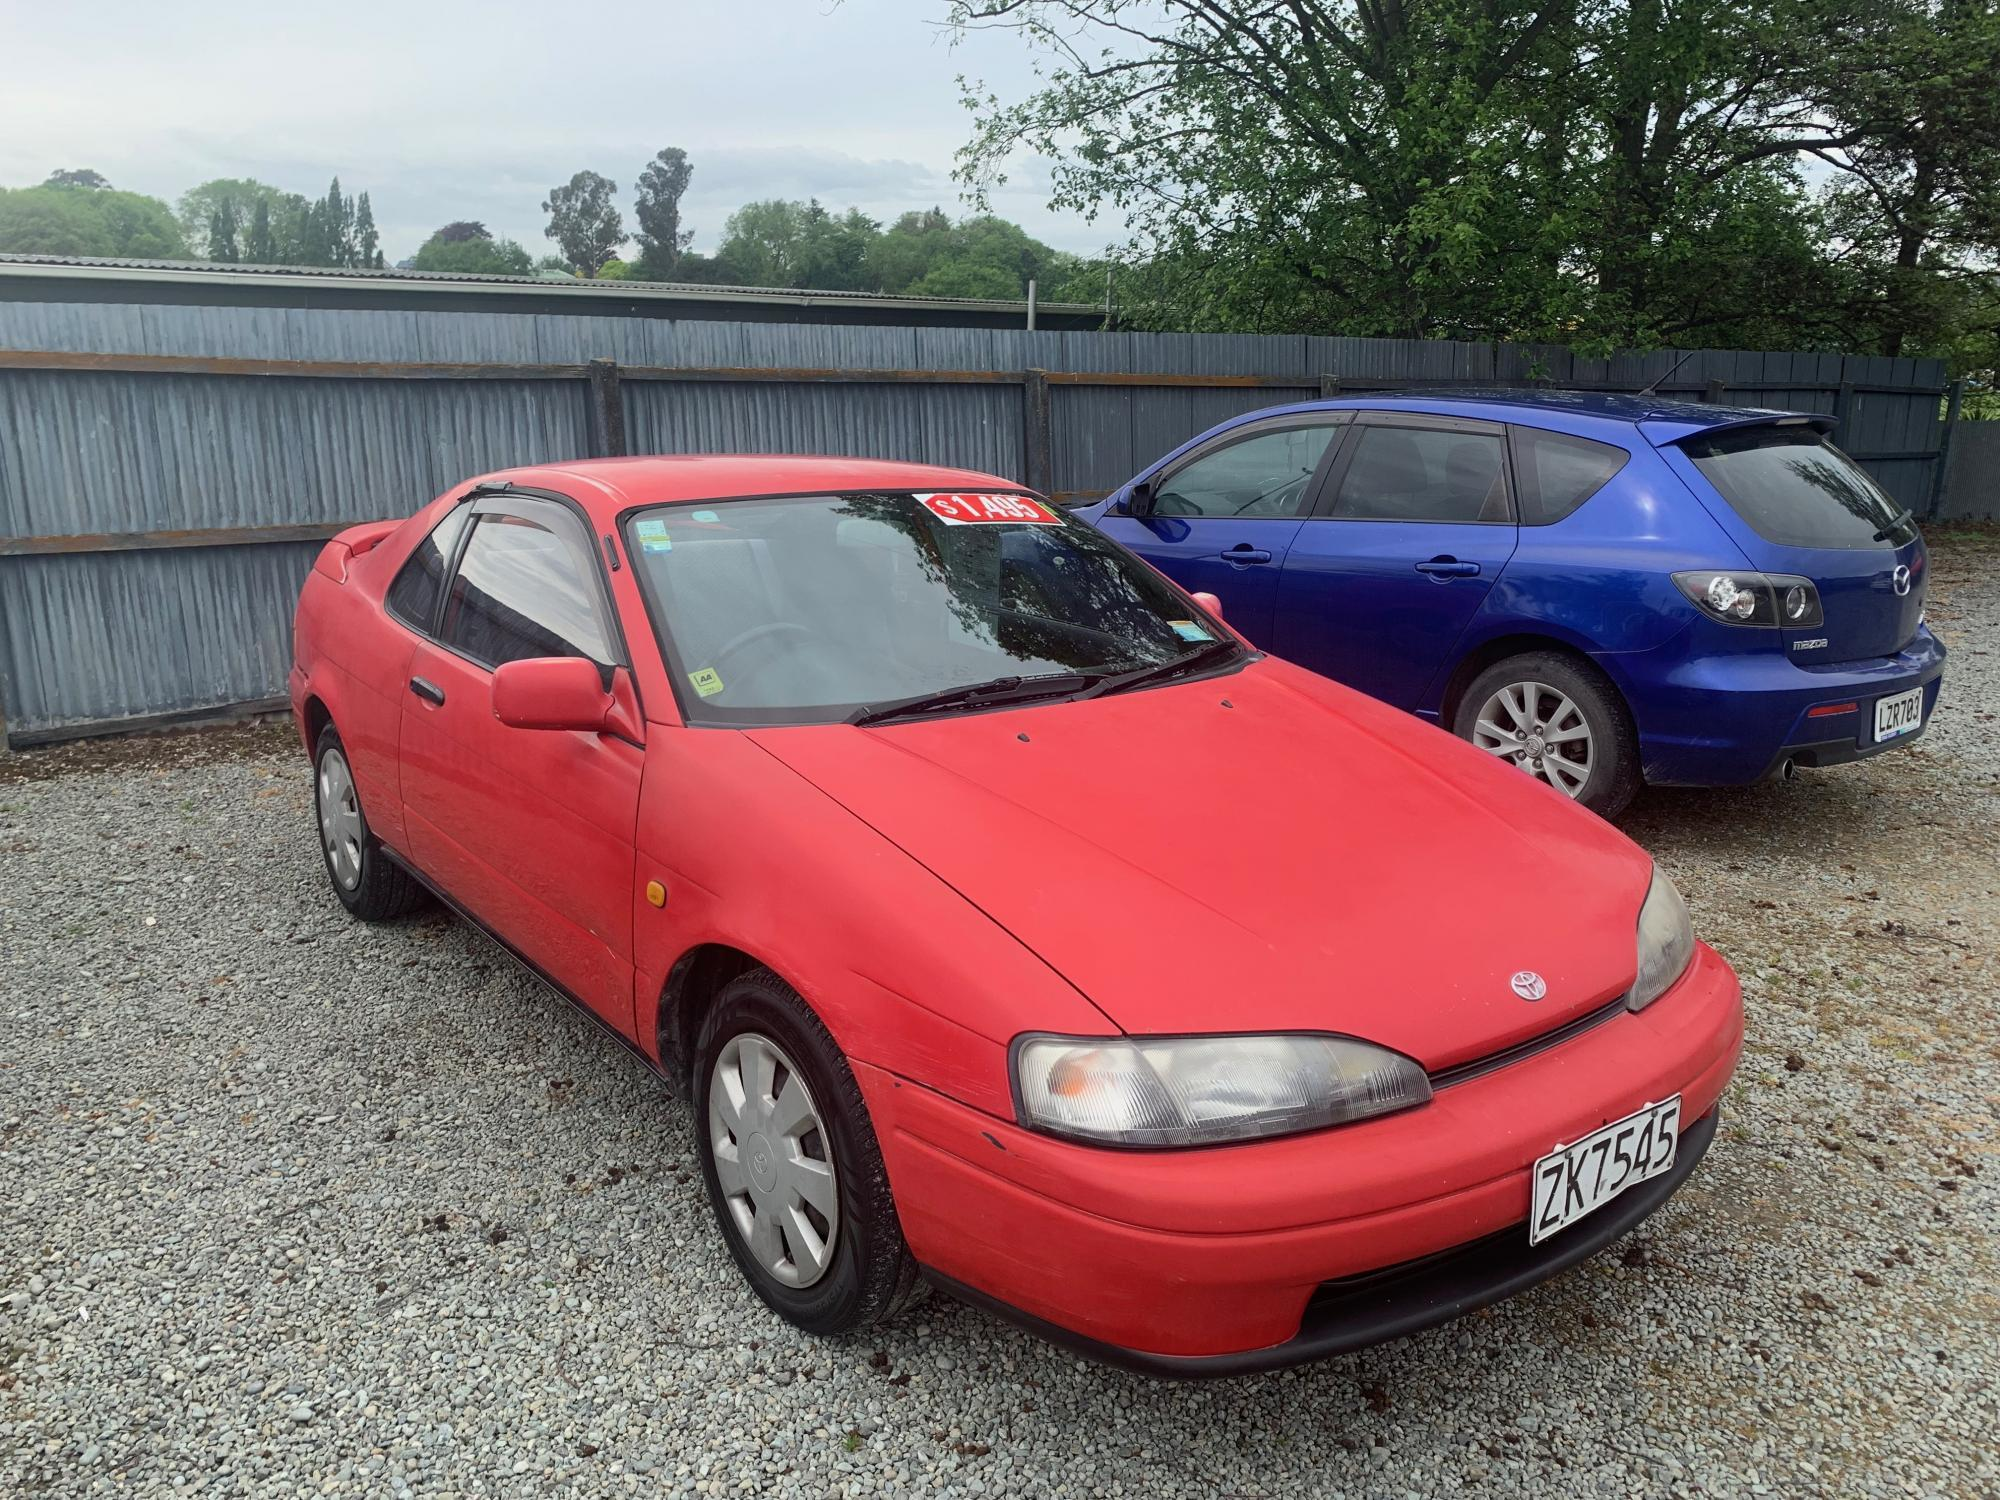 image-0, '94 Toyota Cynos Coupe  at Timaru